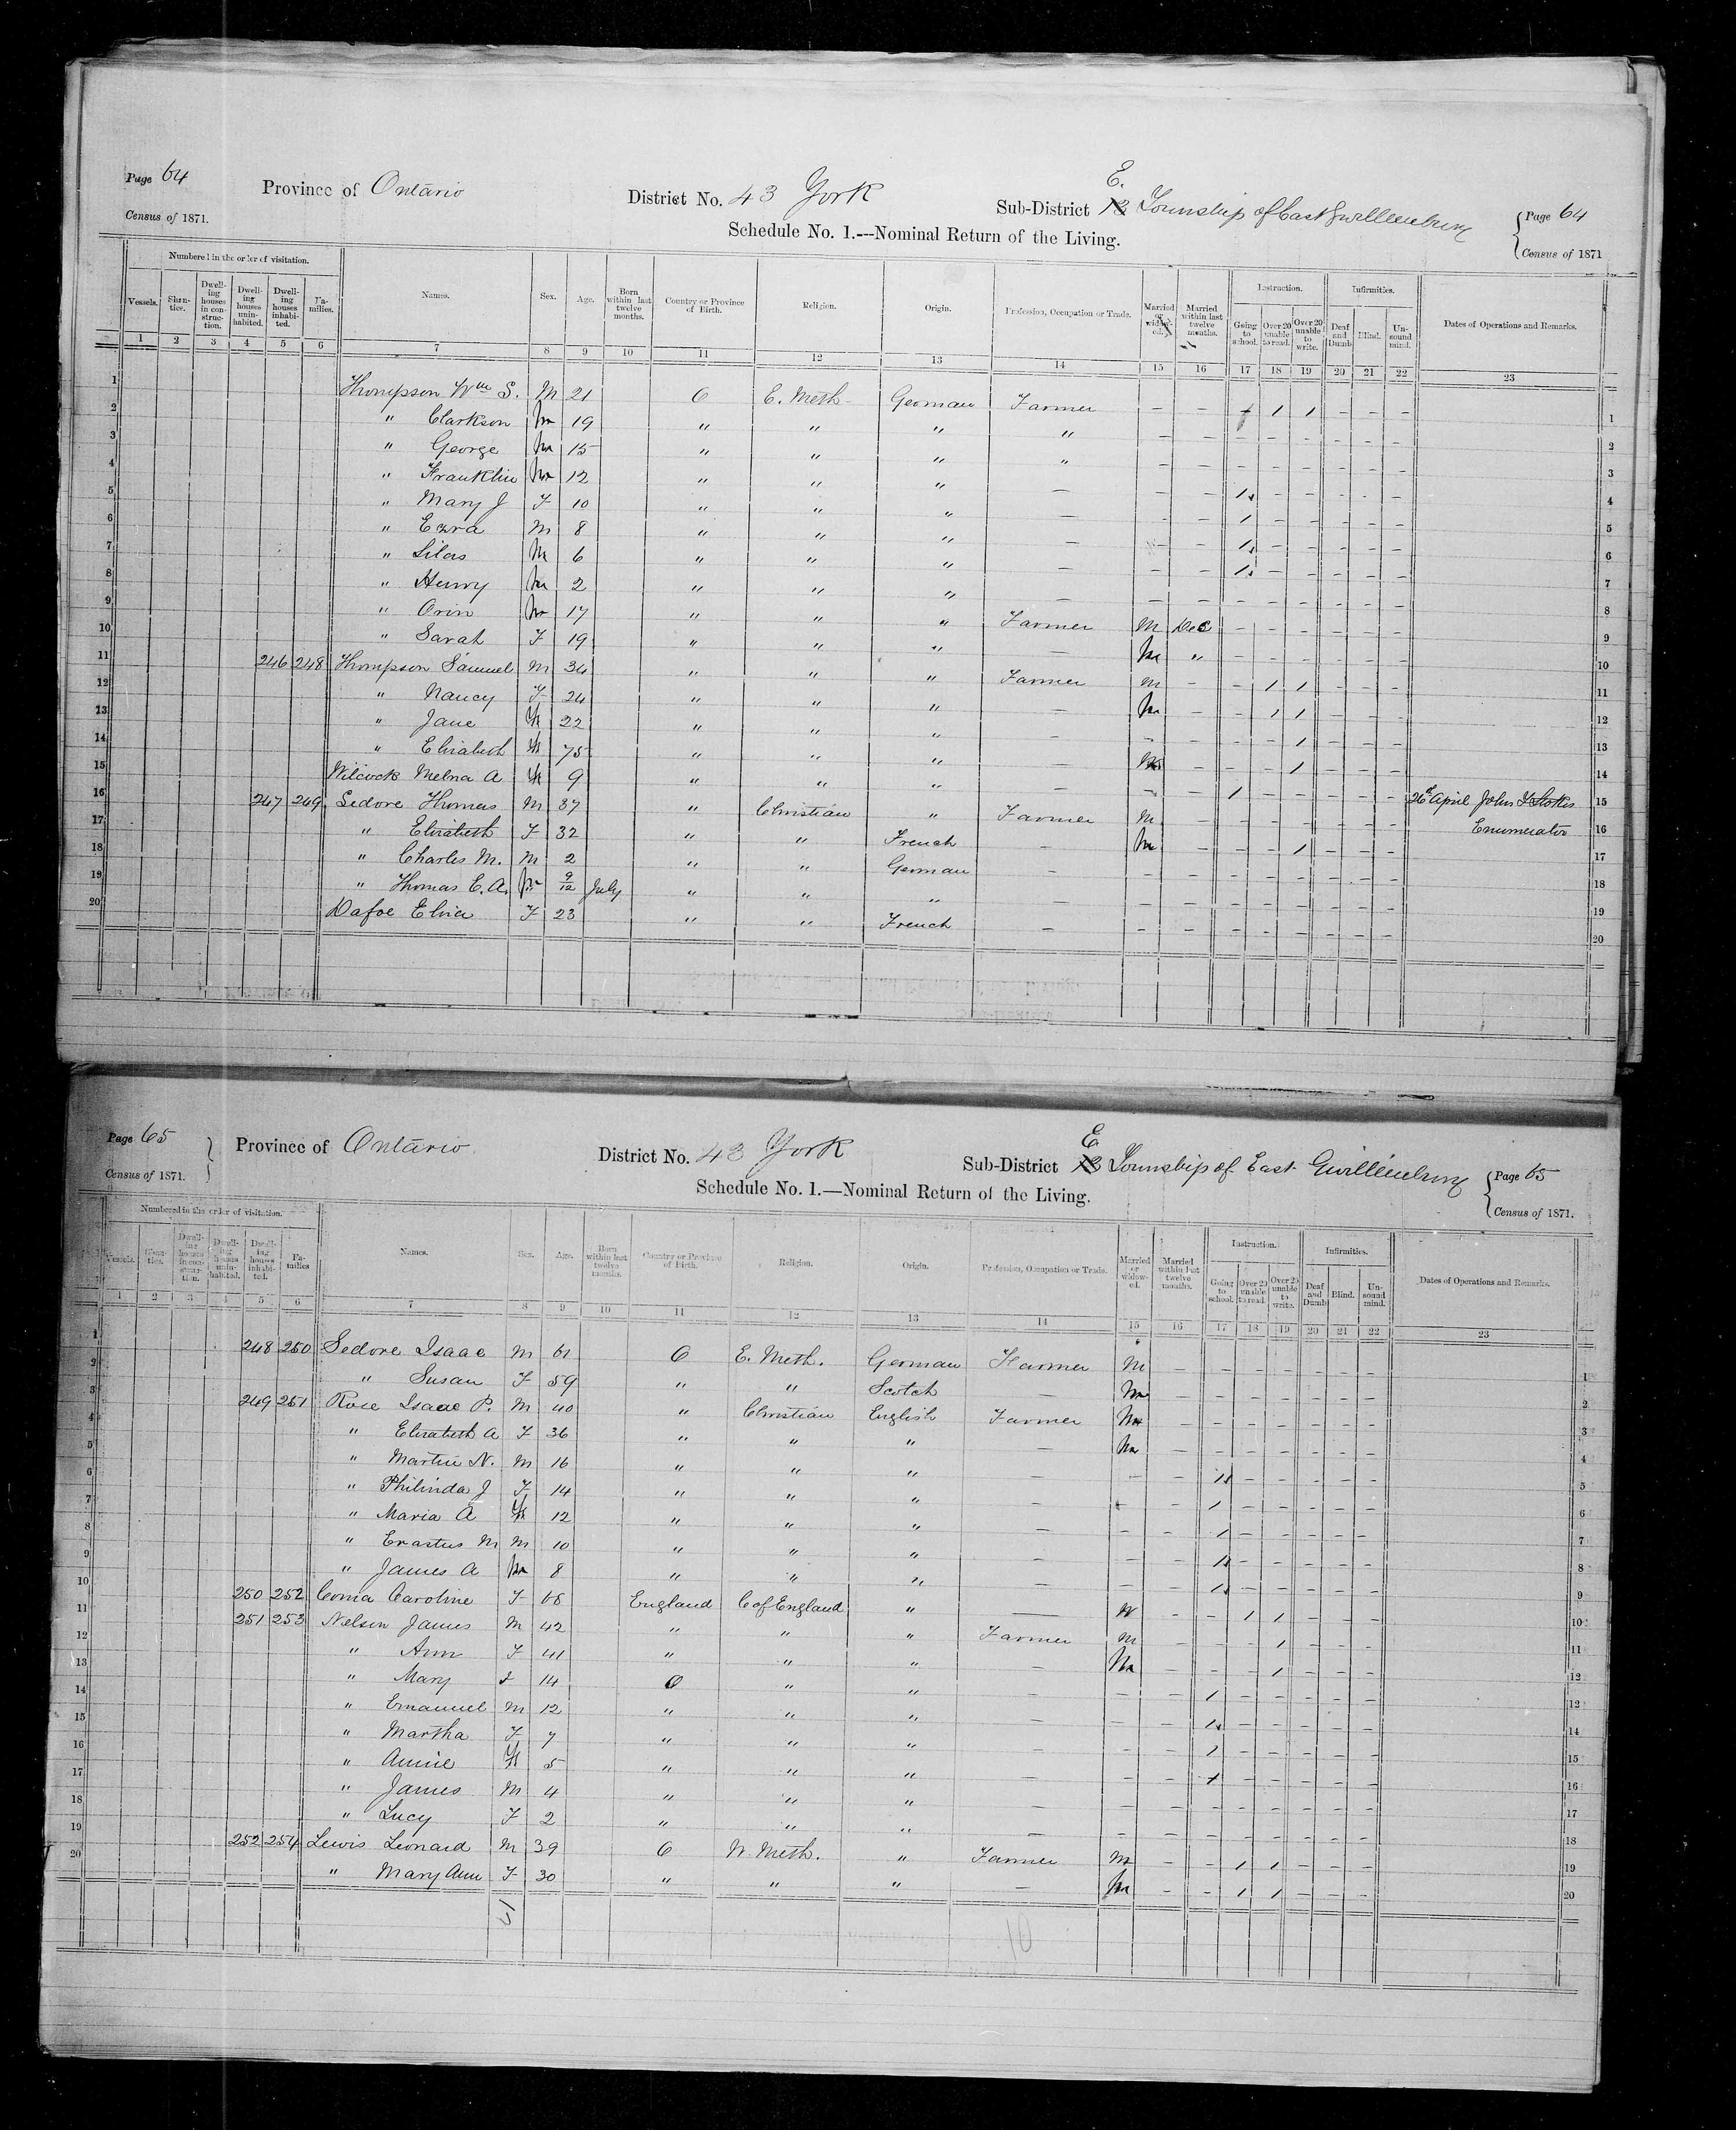 Title: Census of Canada, 1871 - Mikan Number: 142105 - Microform: c-9966